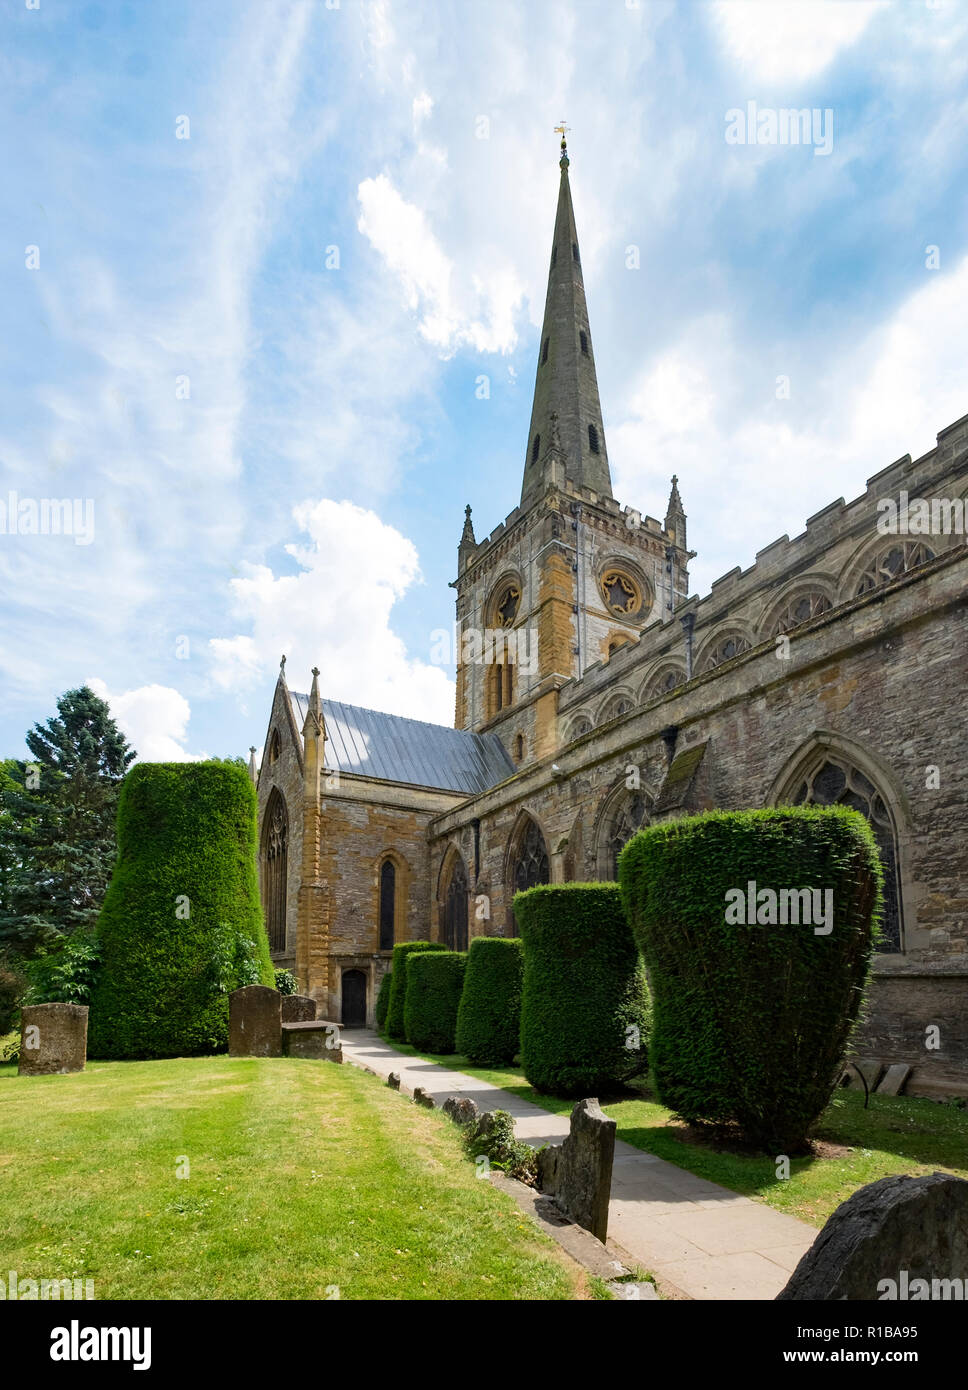 Holy Trinity Church, Straford Upon Avon, UK. The chuch which is home to Shakespeare's grave. - Stock Image